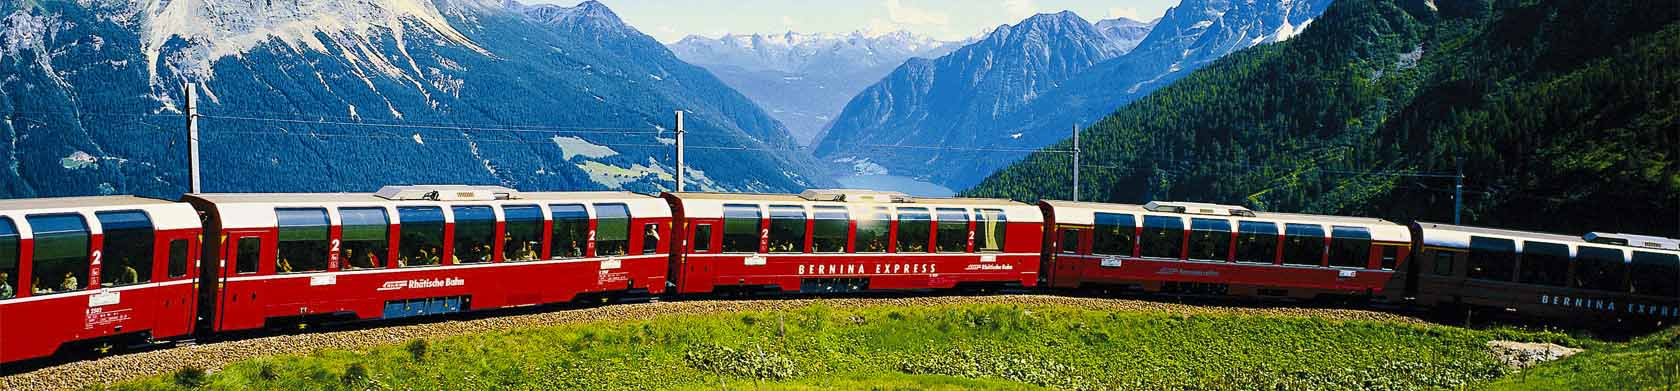 viaggi-bernina-express-estate-pano